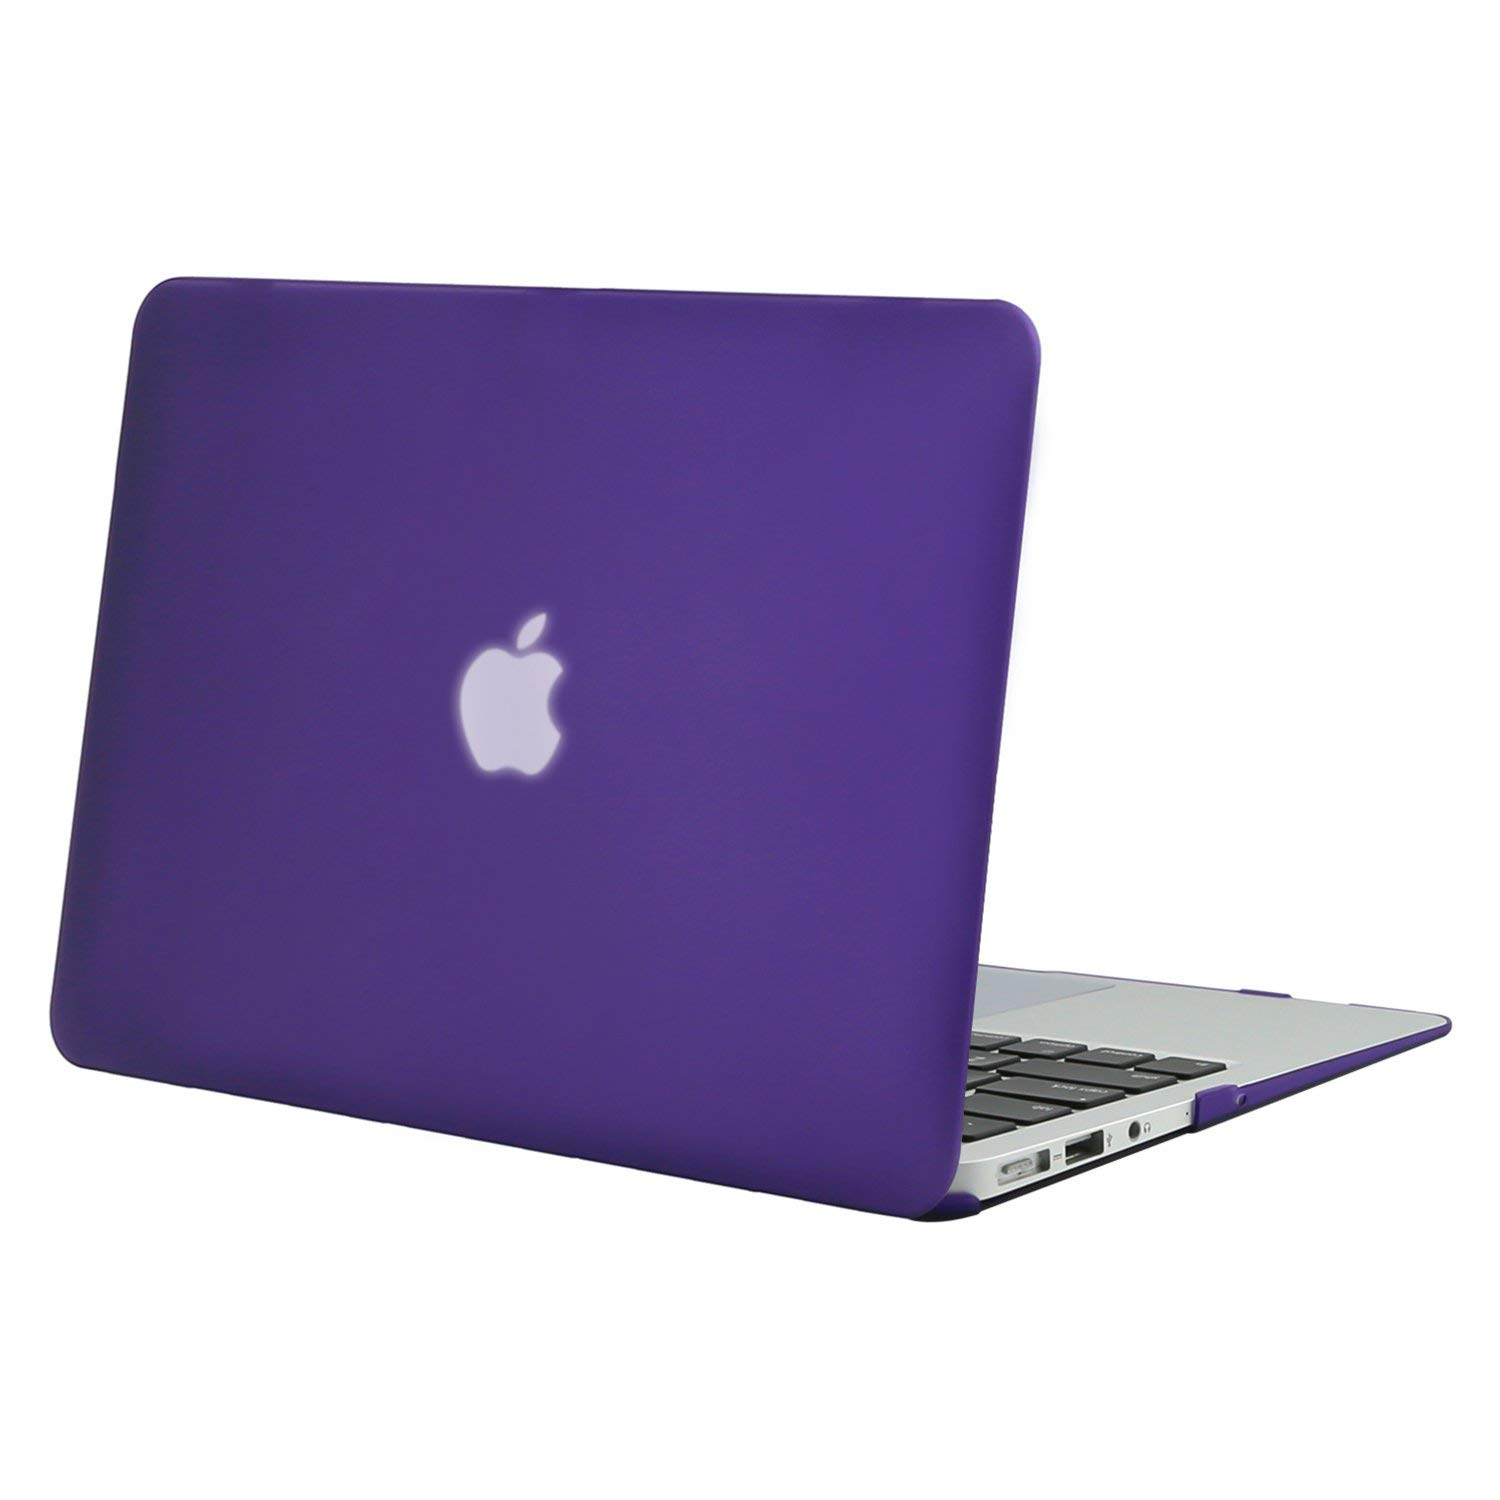 "Codegen Apple 13"" 13 inc Macbook Pro A1706 A1708 Lacivert Kılıf Kapak CMPT-133DB"